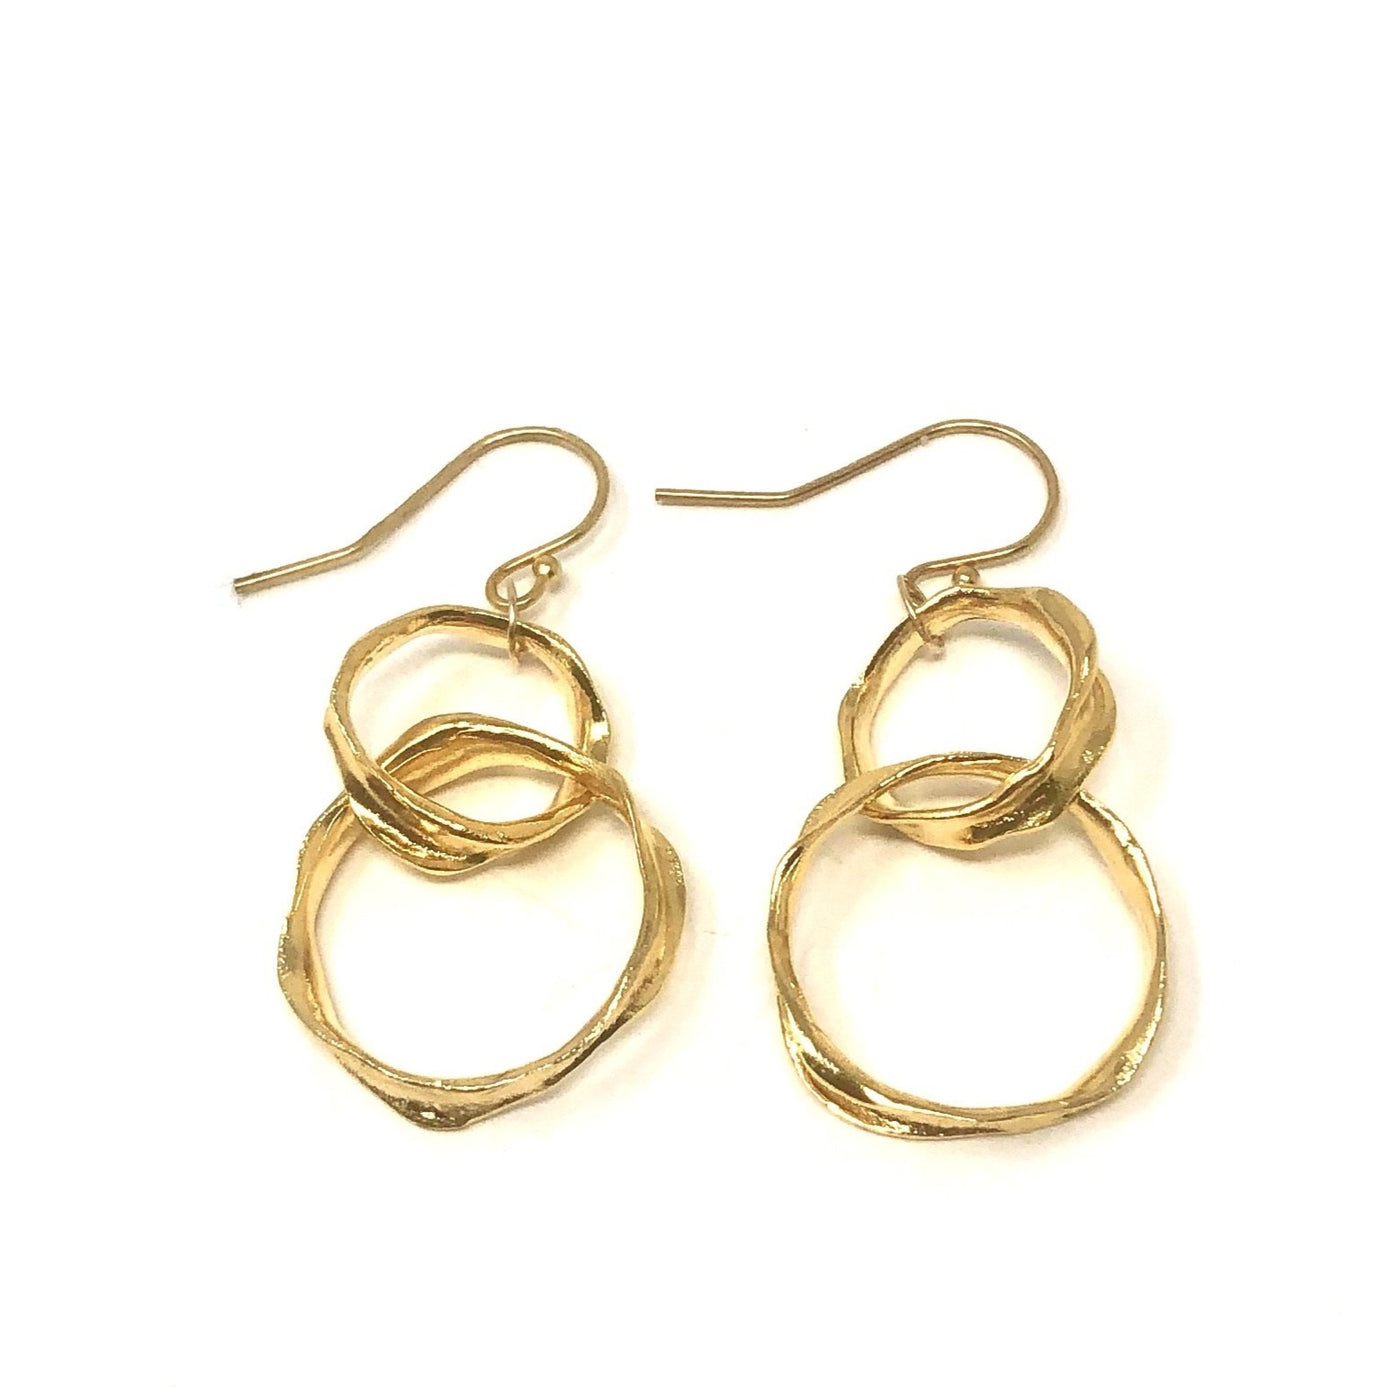 MSH EPOC48G GOLD DOUBLE CIRCLE DANGLES